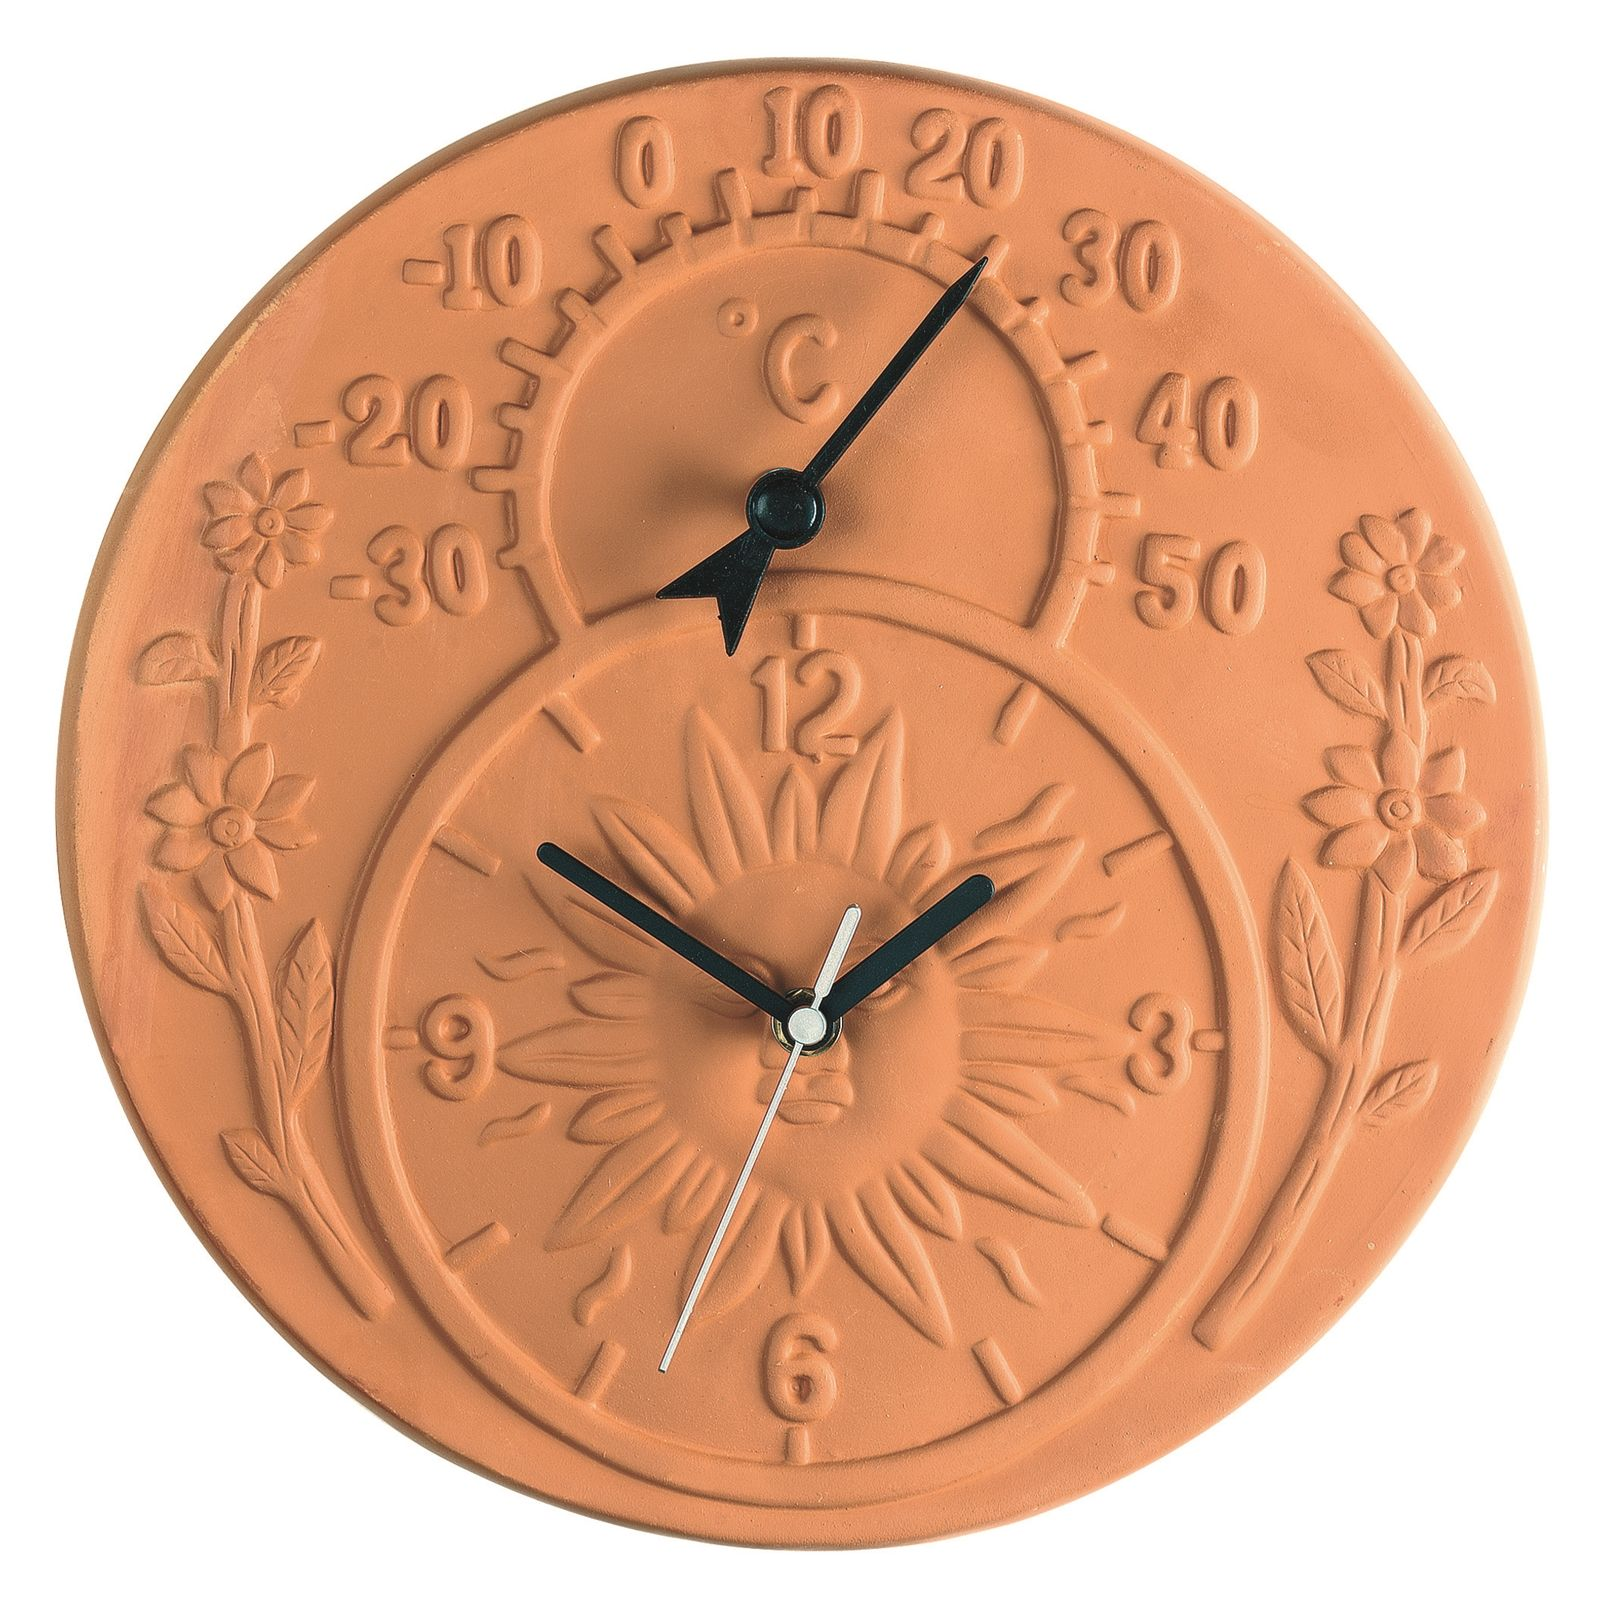 Find Gardman Terracotta Garden Clock And Thermometer at Bunnings ...